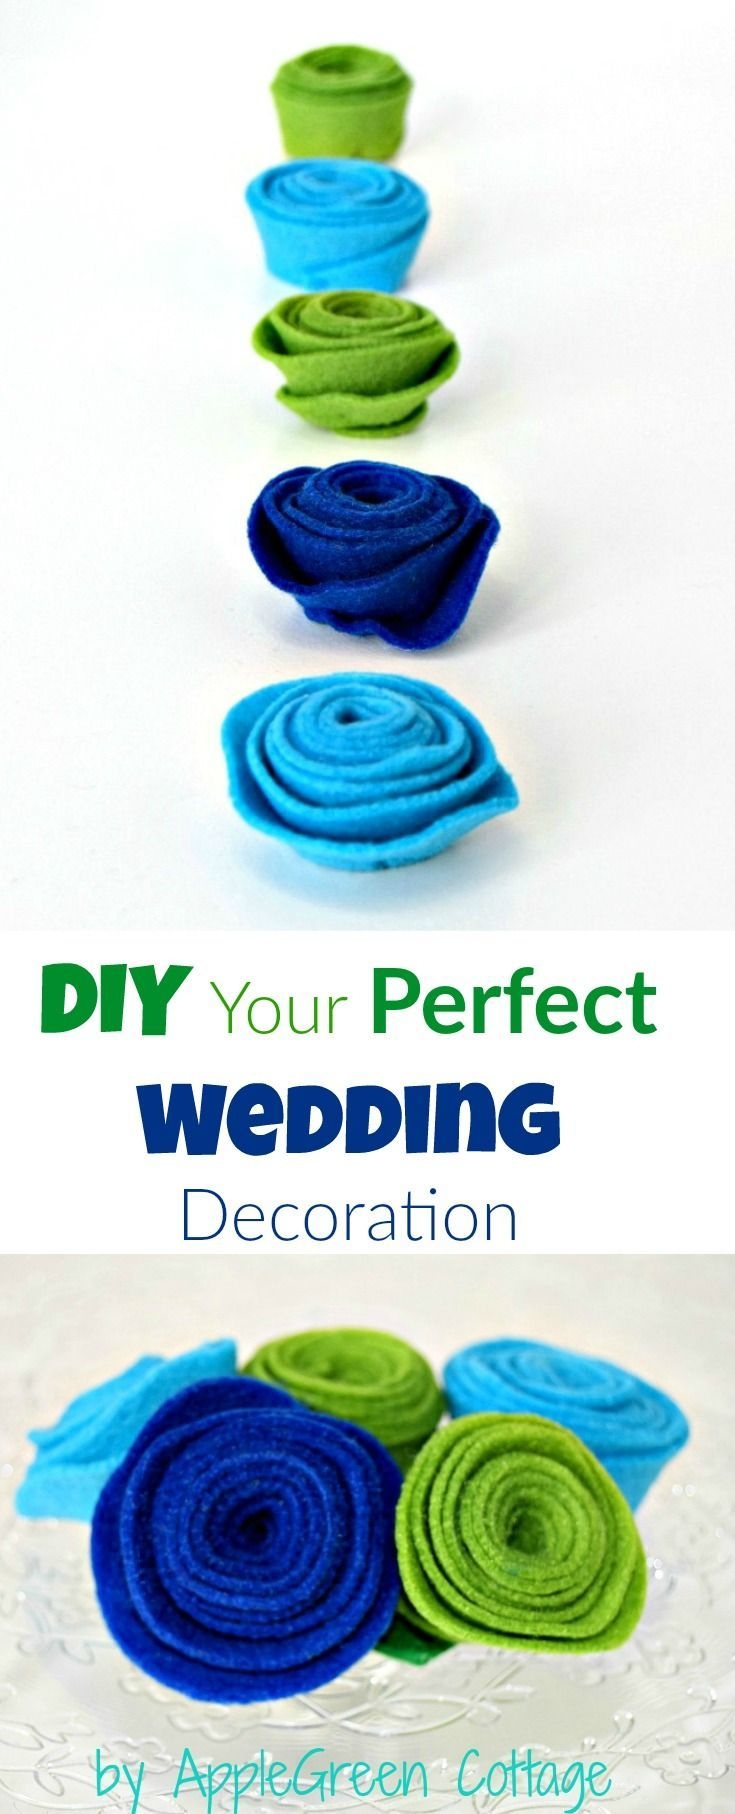 How to make diy felt flowers easiest way hanging flowers diy a step by step tutorial how to make rolled felt flowers rolled flowers are among the easiest decorations you can make out of felt scraps really quickly junglespirit Gallery